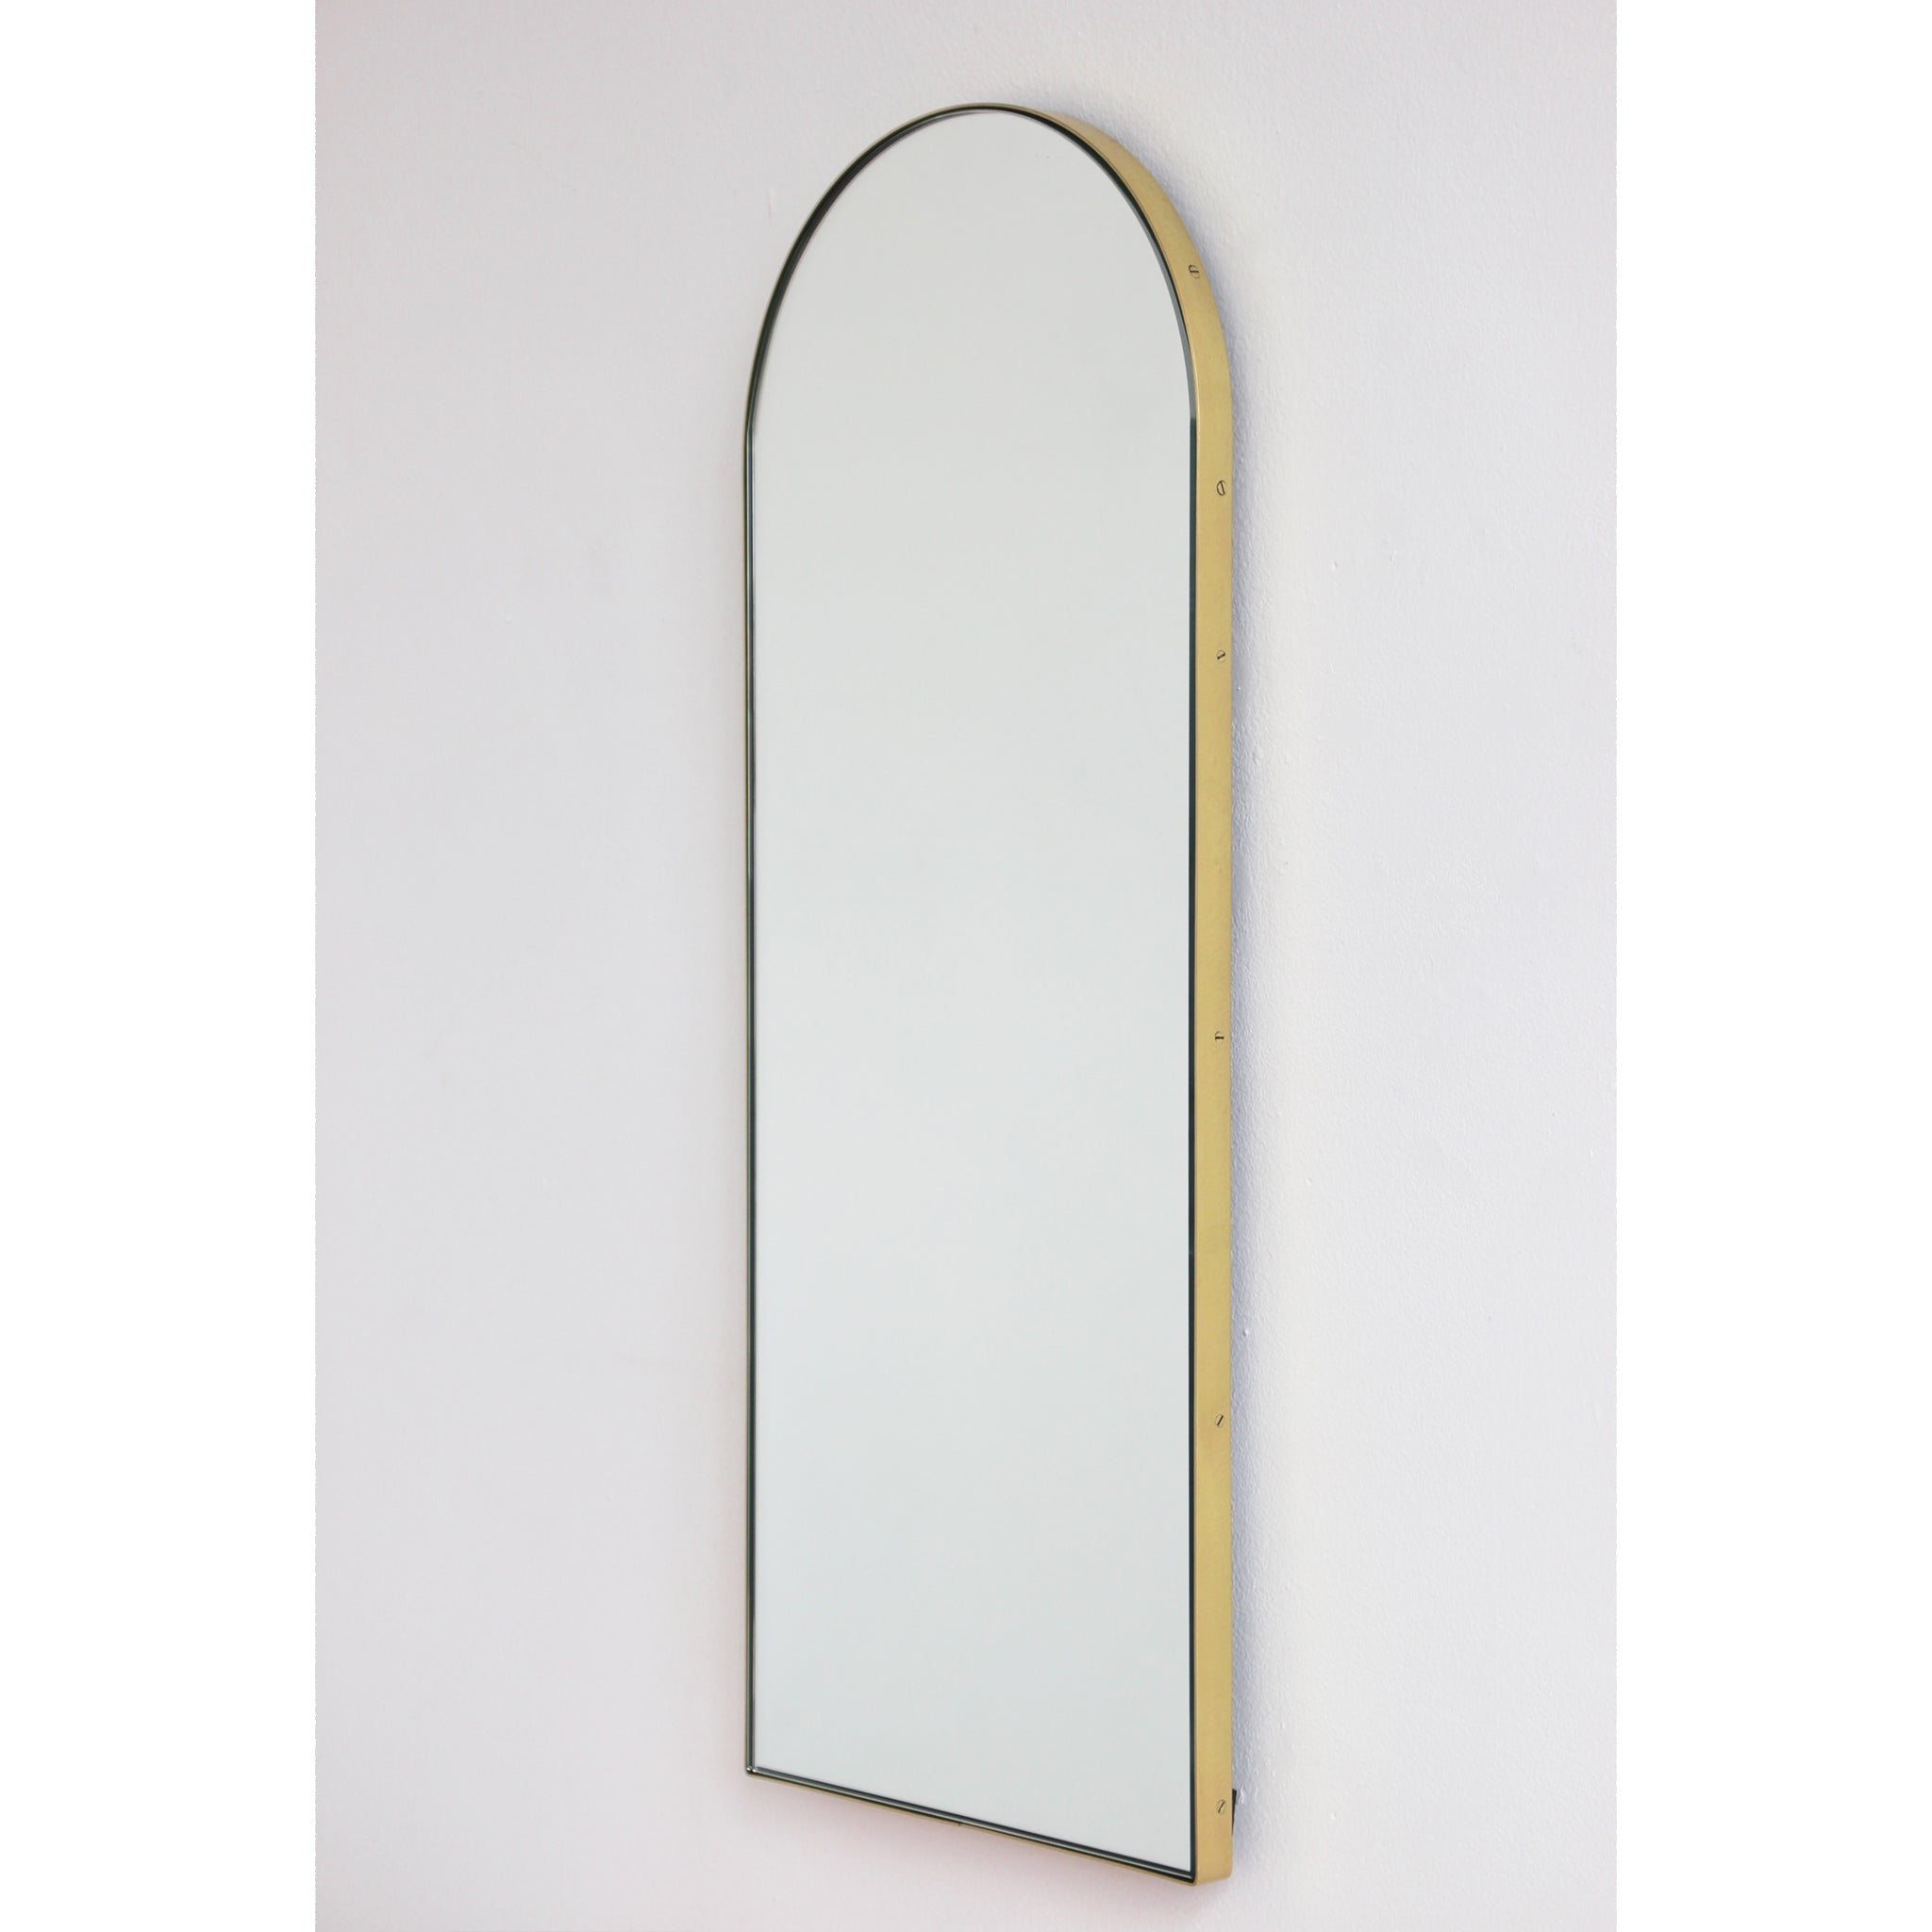 Arcus Suspended Arch Shaped Bathroom Modern Mirror With A Brushed Bra Alguacil Perkoff